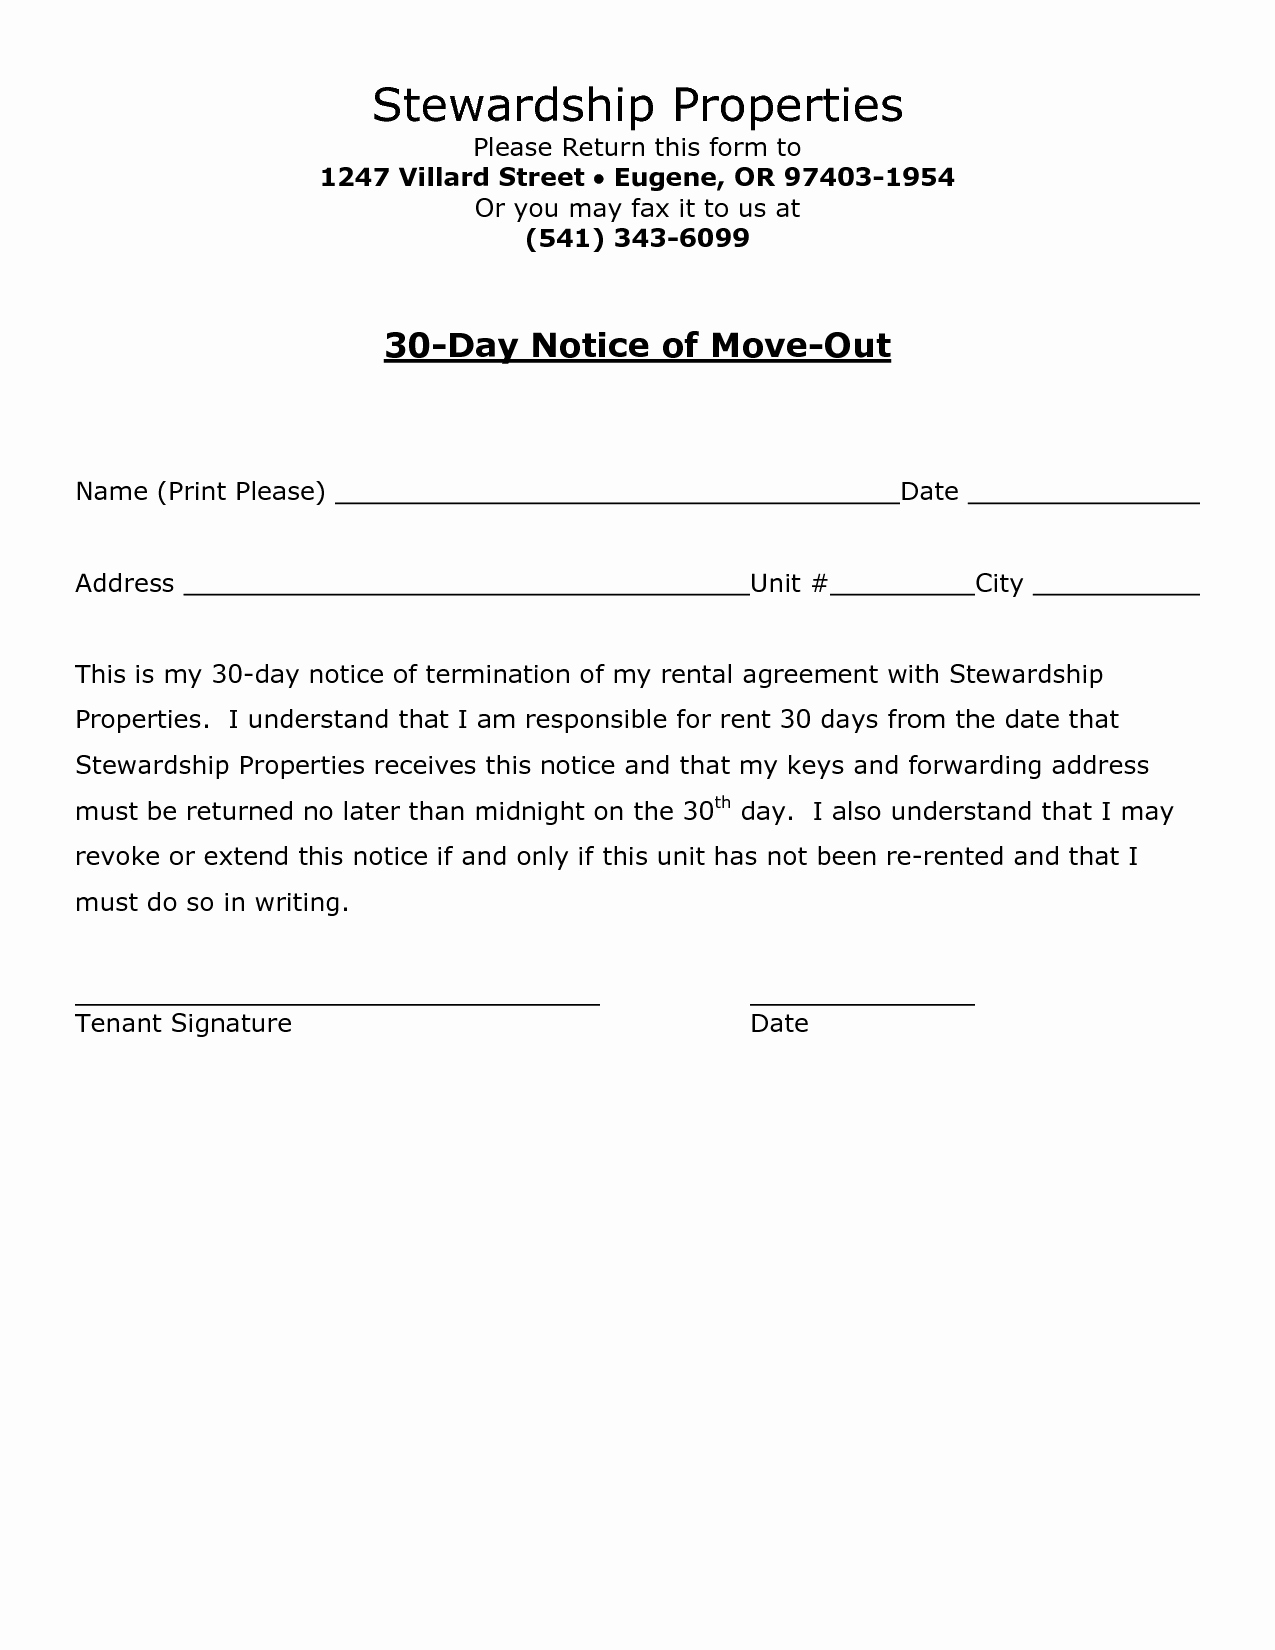 Sample Of 30 Day Notice to Move Out Fresh Best S Of Move Out Notice to Tenant Template 30 Day